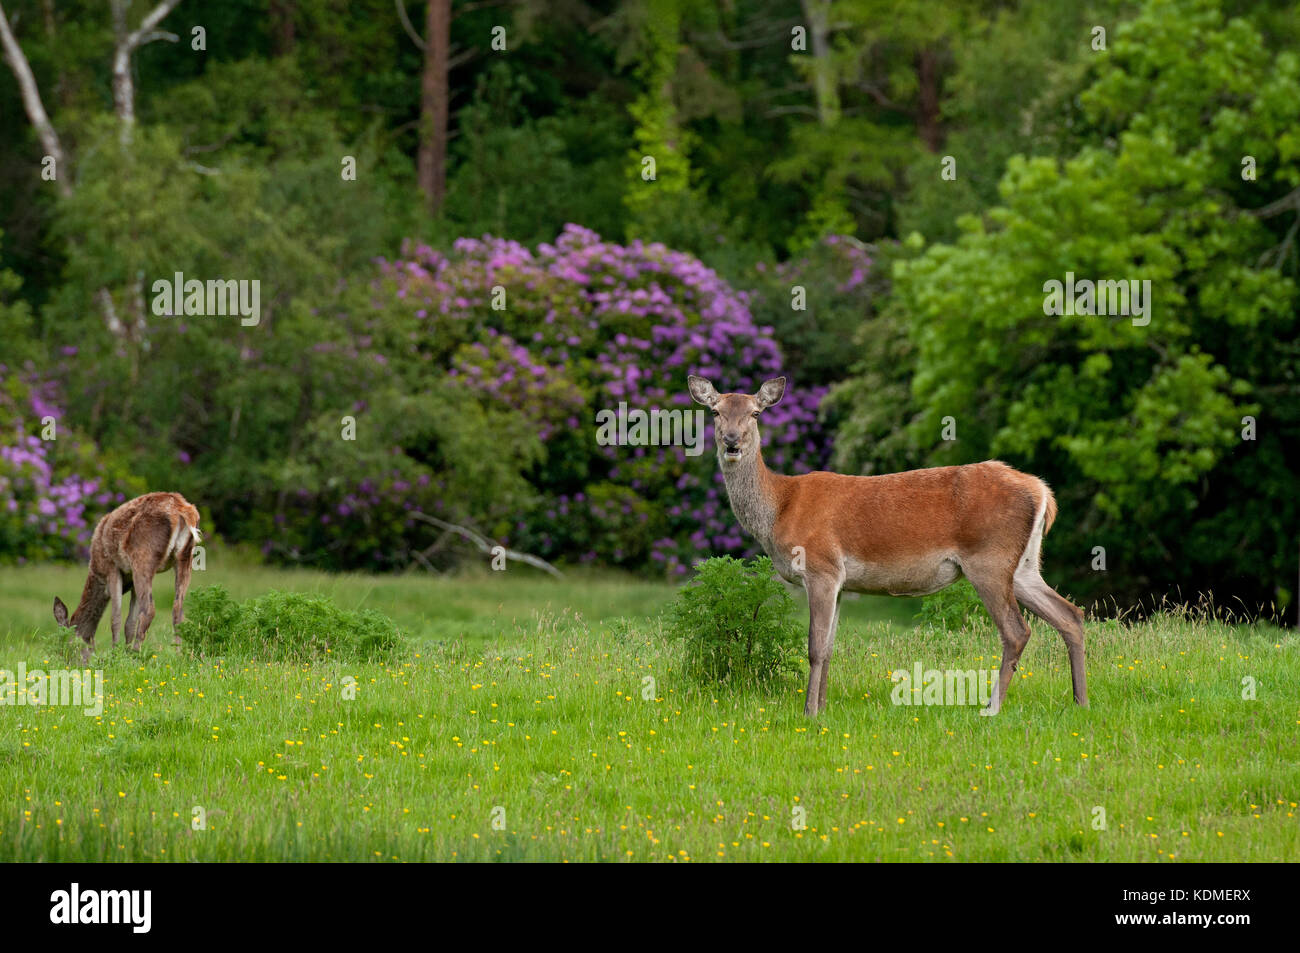 Red deer (Cervus elaphus), Killarney National Park, County Kerry, Ireland - Stock Image